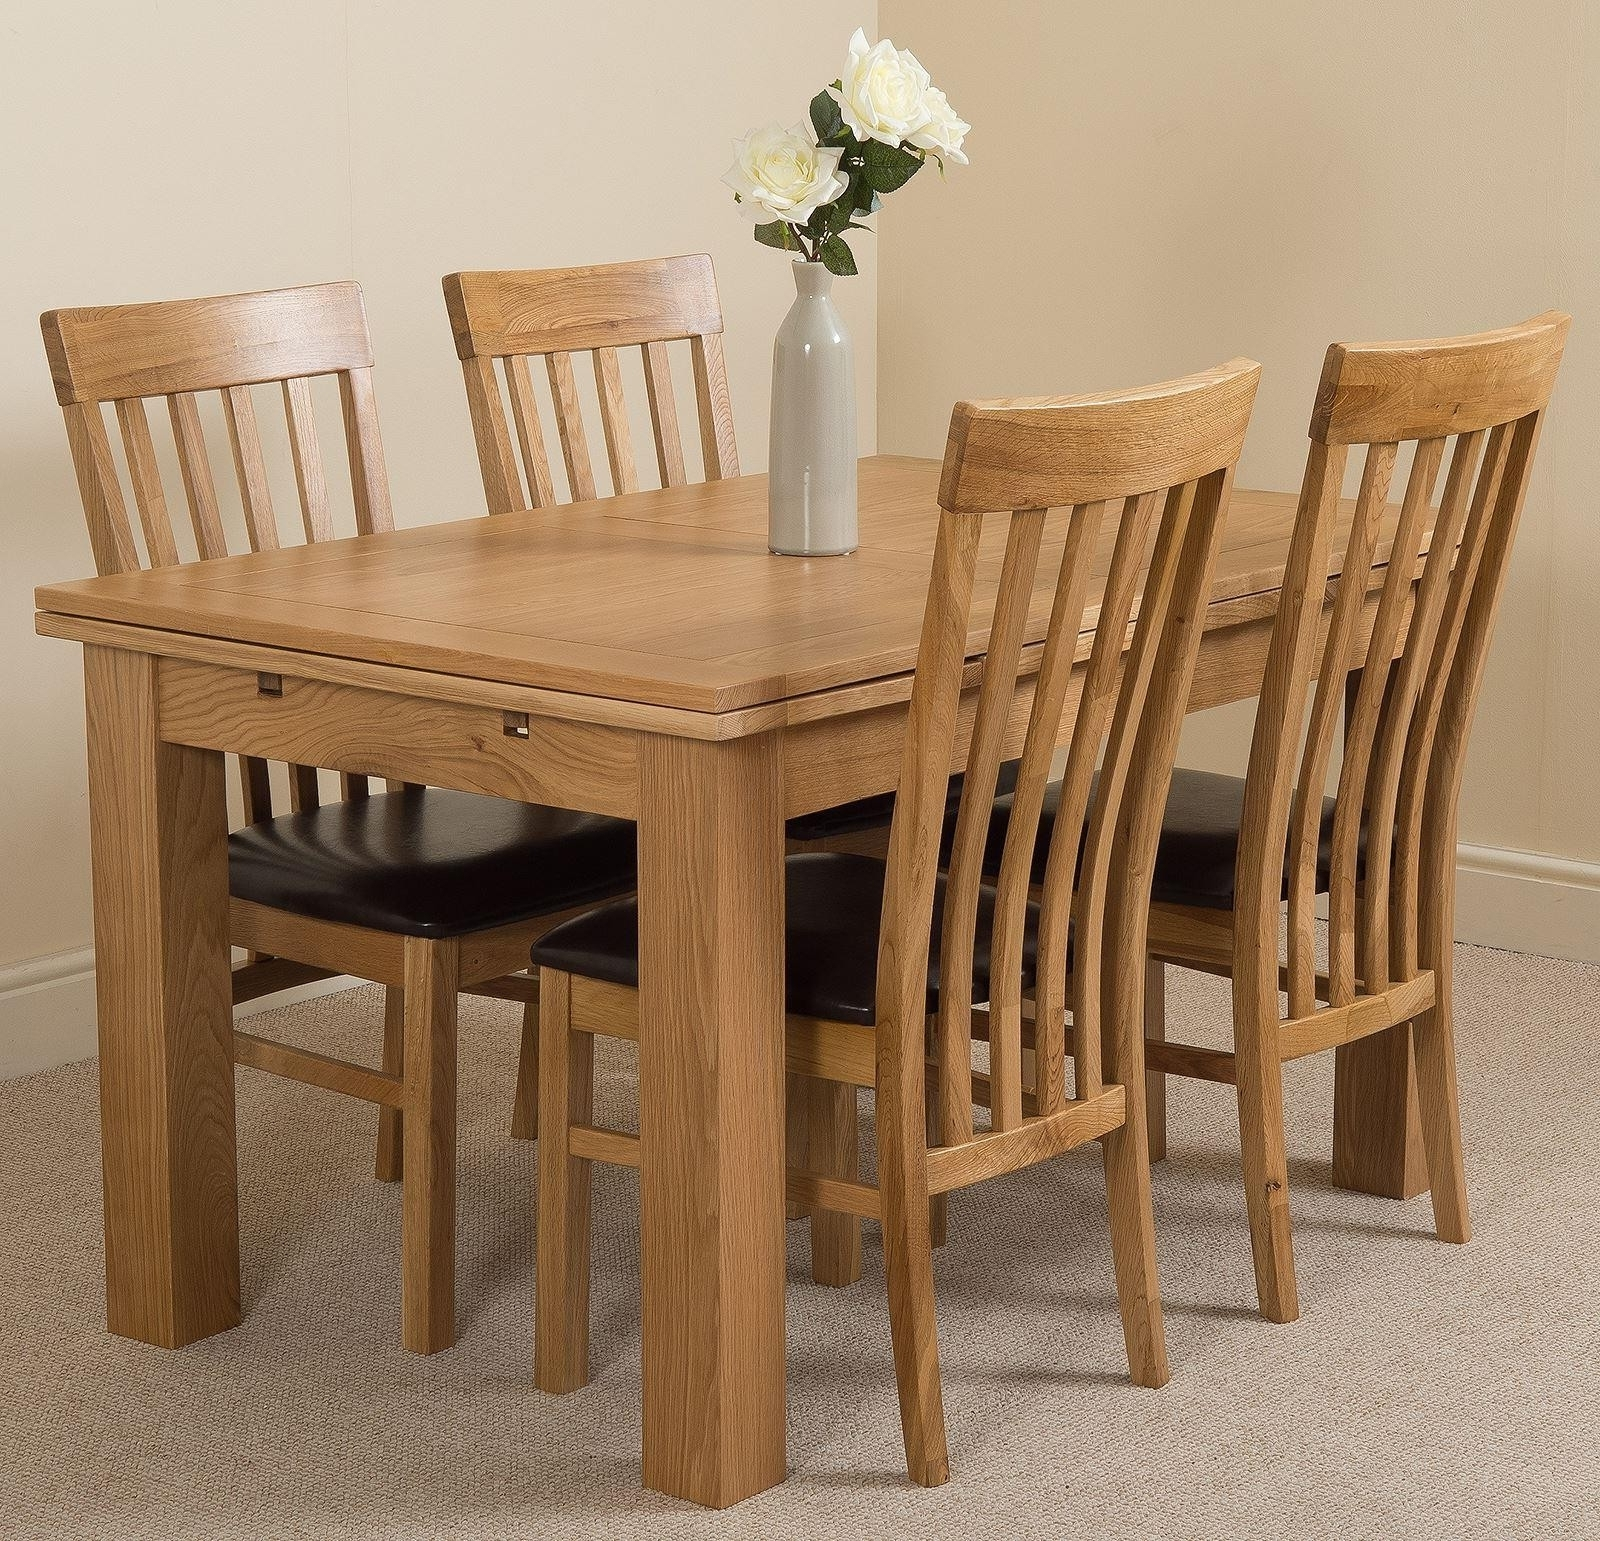 Extending Oak Dining Tables And Chairs With Regard To Popular Richmond Oak Small Dining Set 4 Harvard Chairs (View 5 of 25)